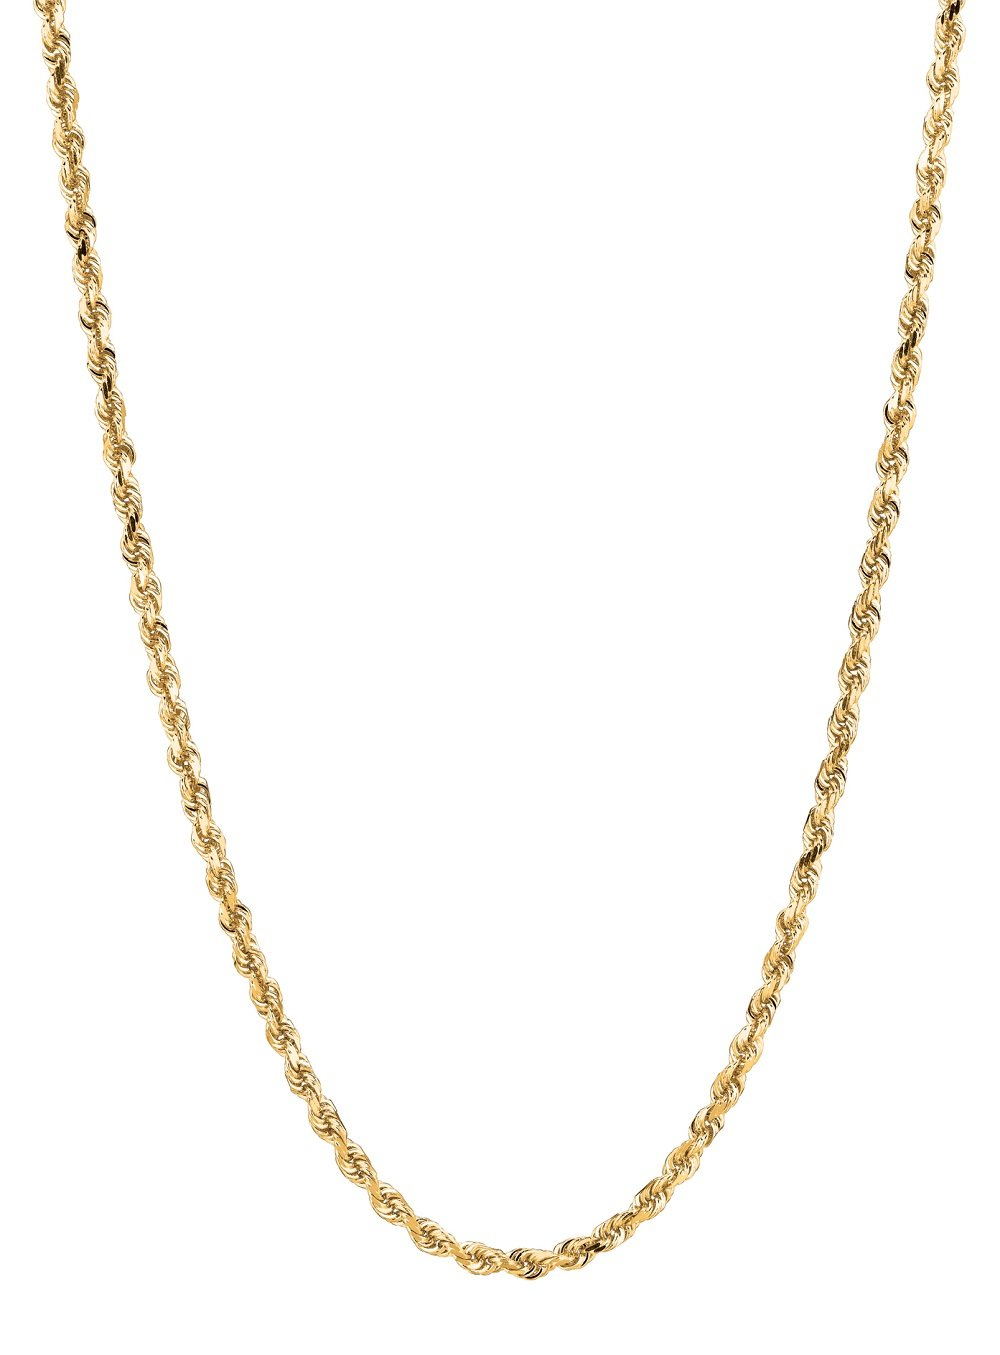 14K Solid Yellow Gold Diamond Cut Rope Pendant Link Chain/Necklace 2 Mm (22 Inches)